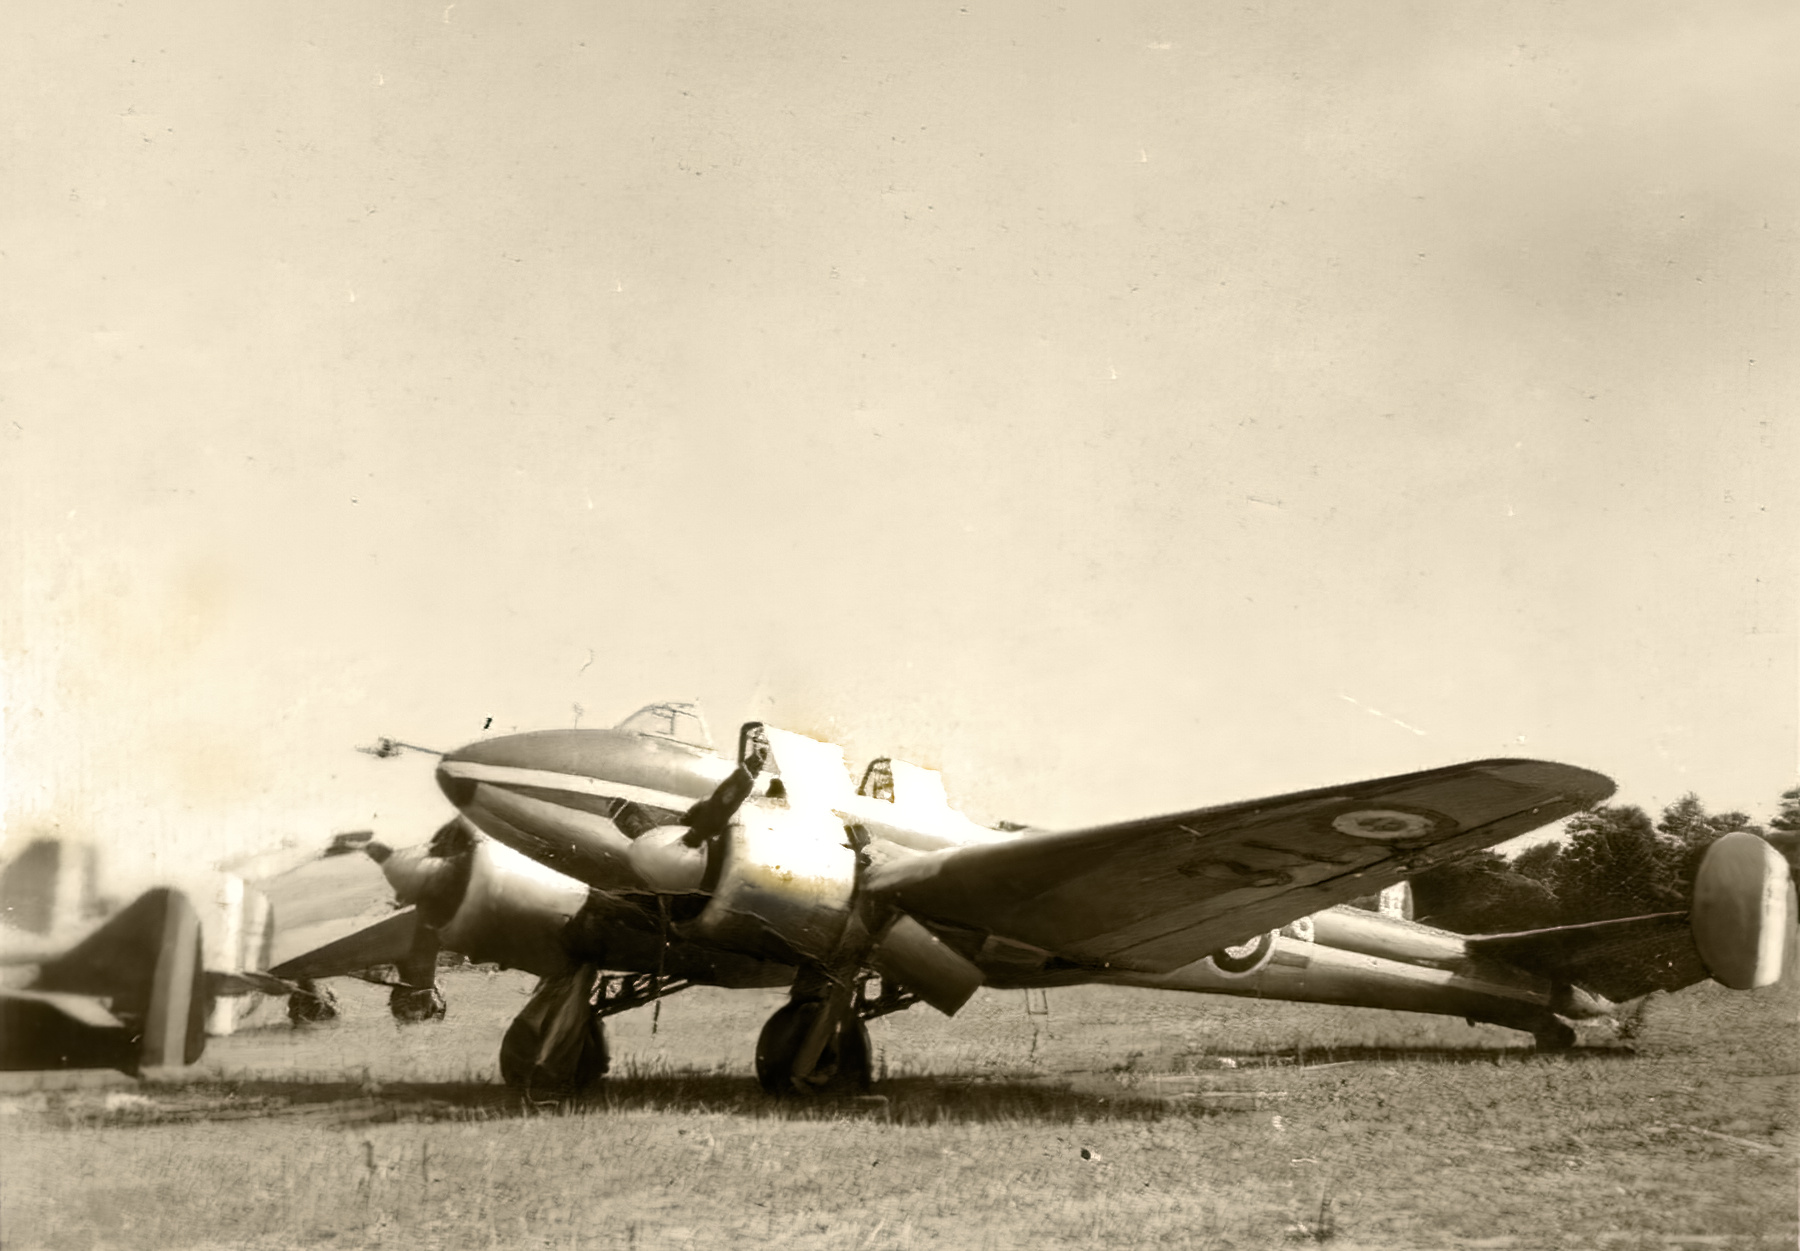 French Airforce Potez 630 sits abandoned after the fall of France June 1940 ebay 02